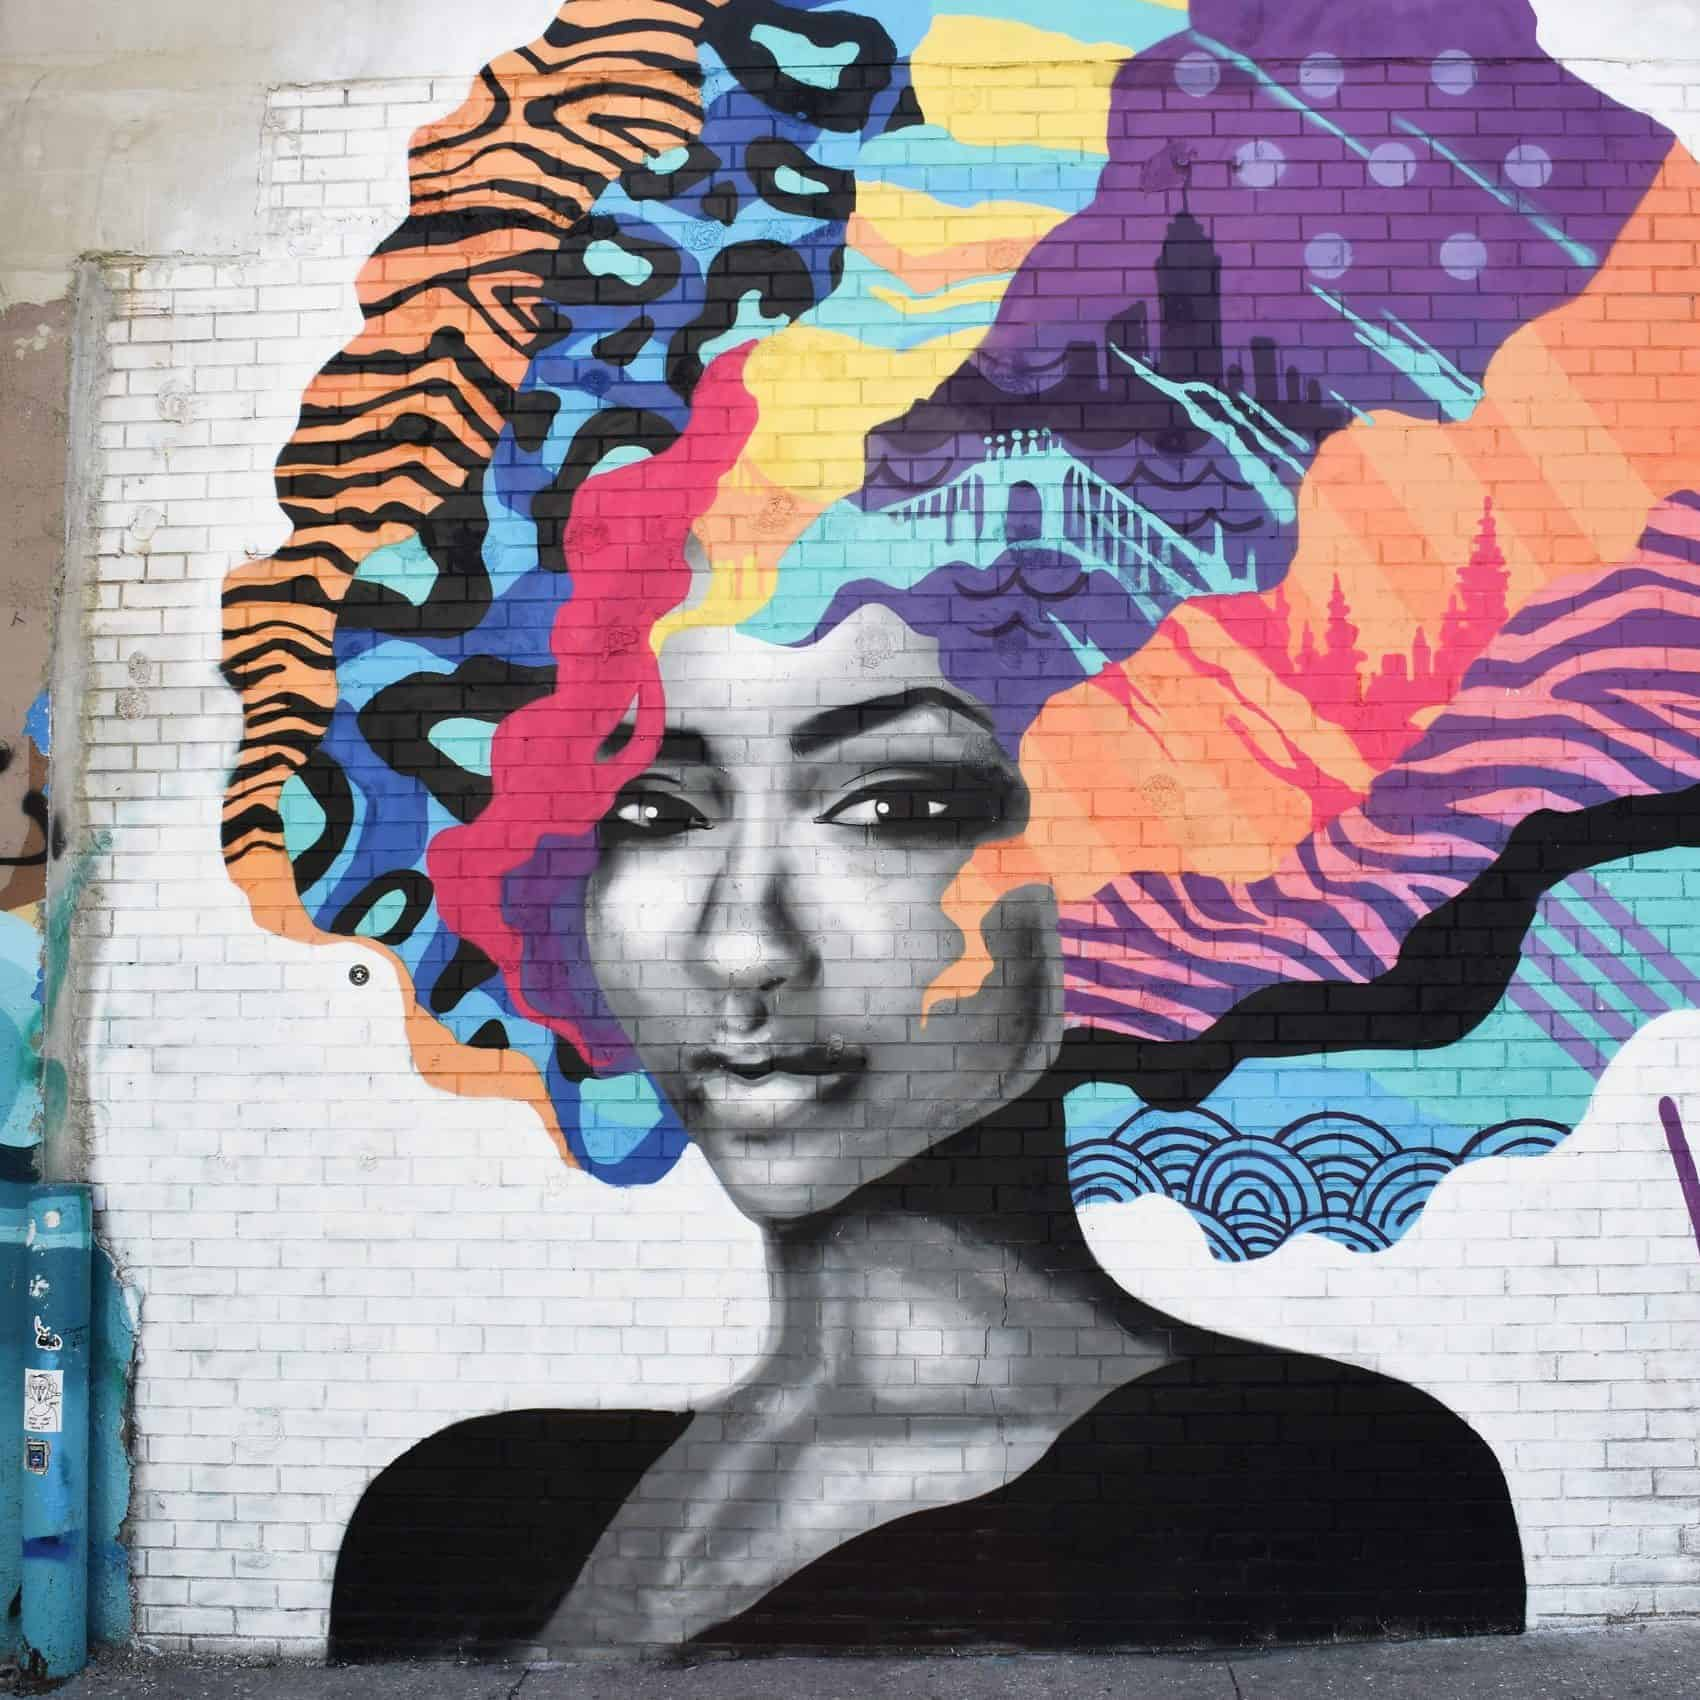 Mural of a black woman